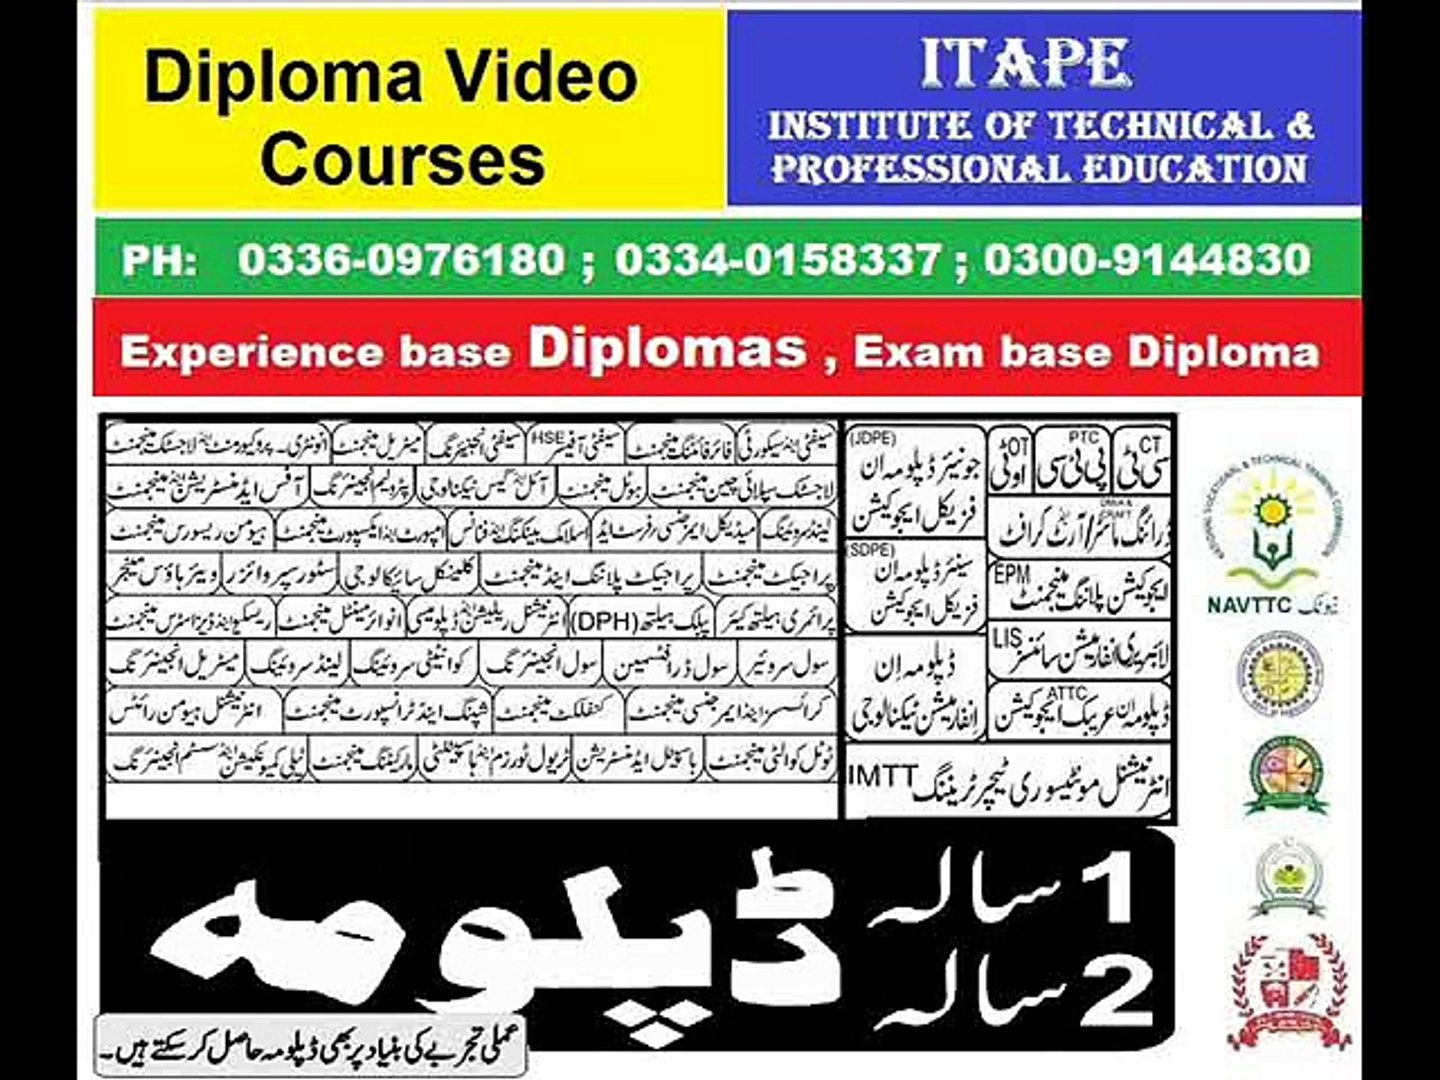 Diploma Certificate Digital Media Fashion Designing Fashion Business Fashion Media And Video Dailymotion